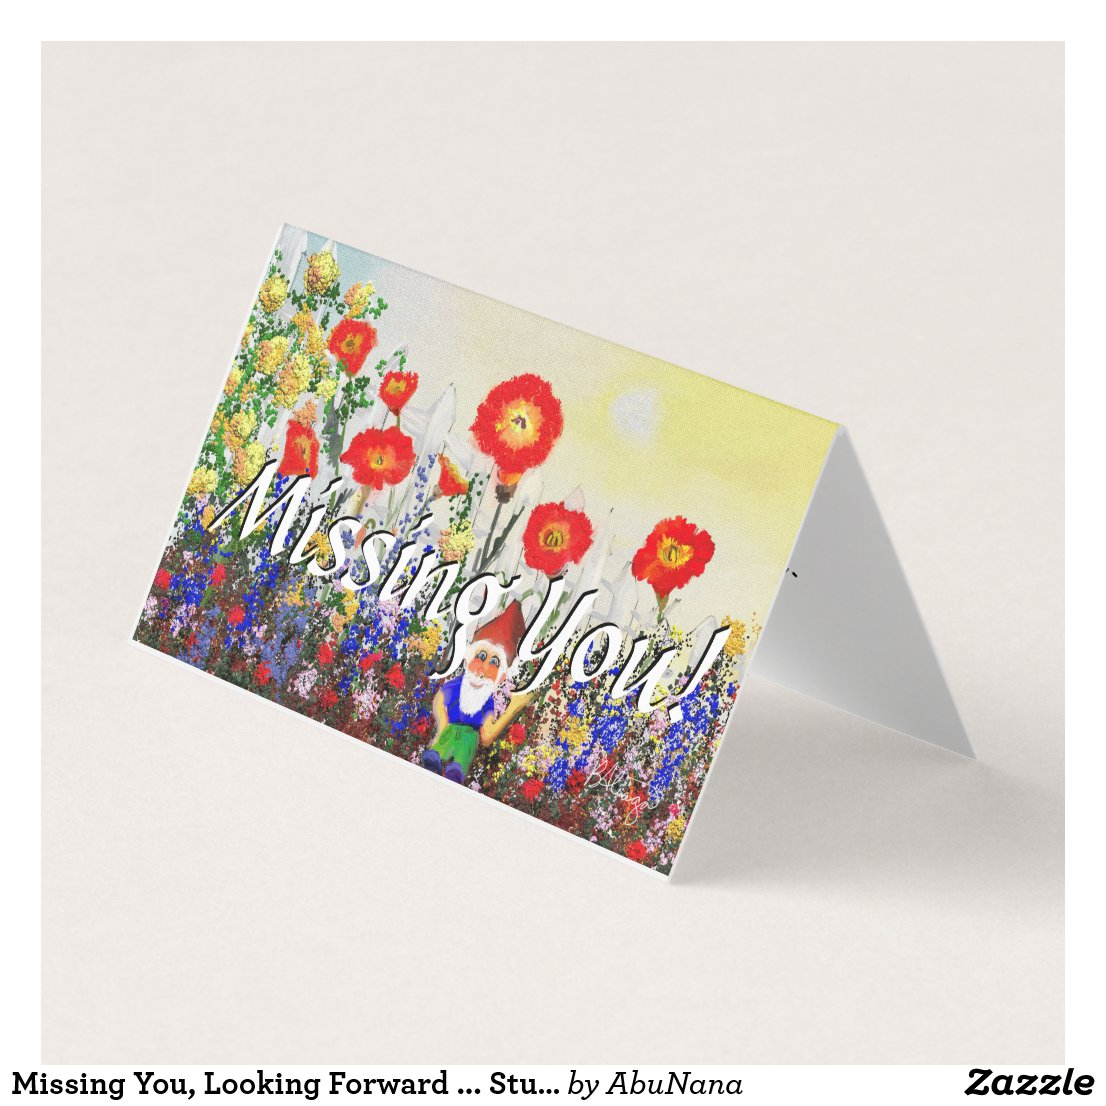 Missing You, Looking Forward ... Stunning Card